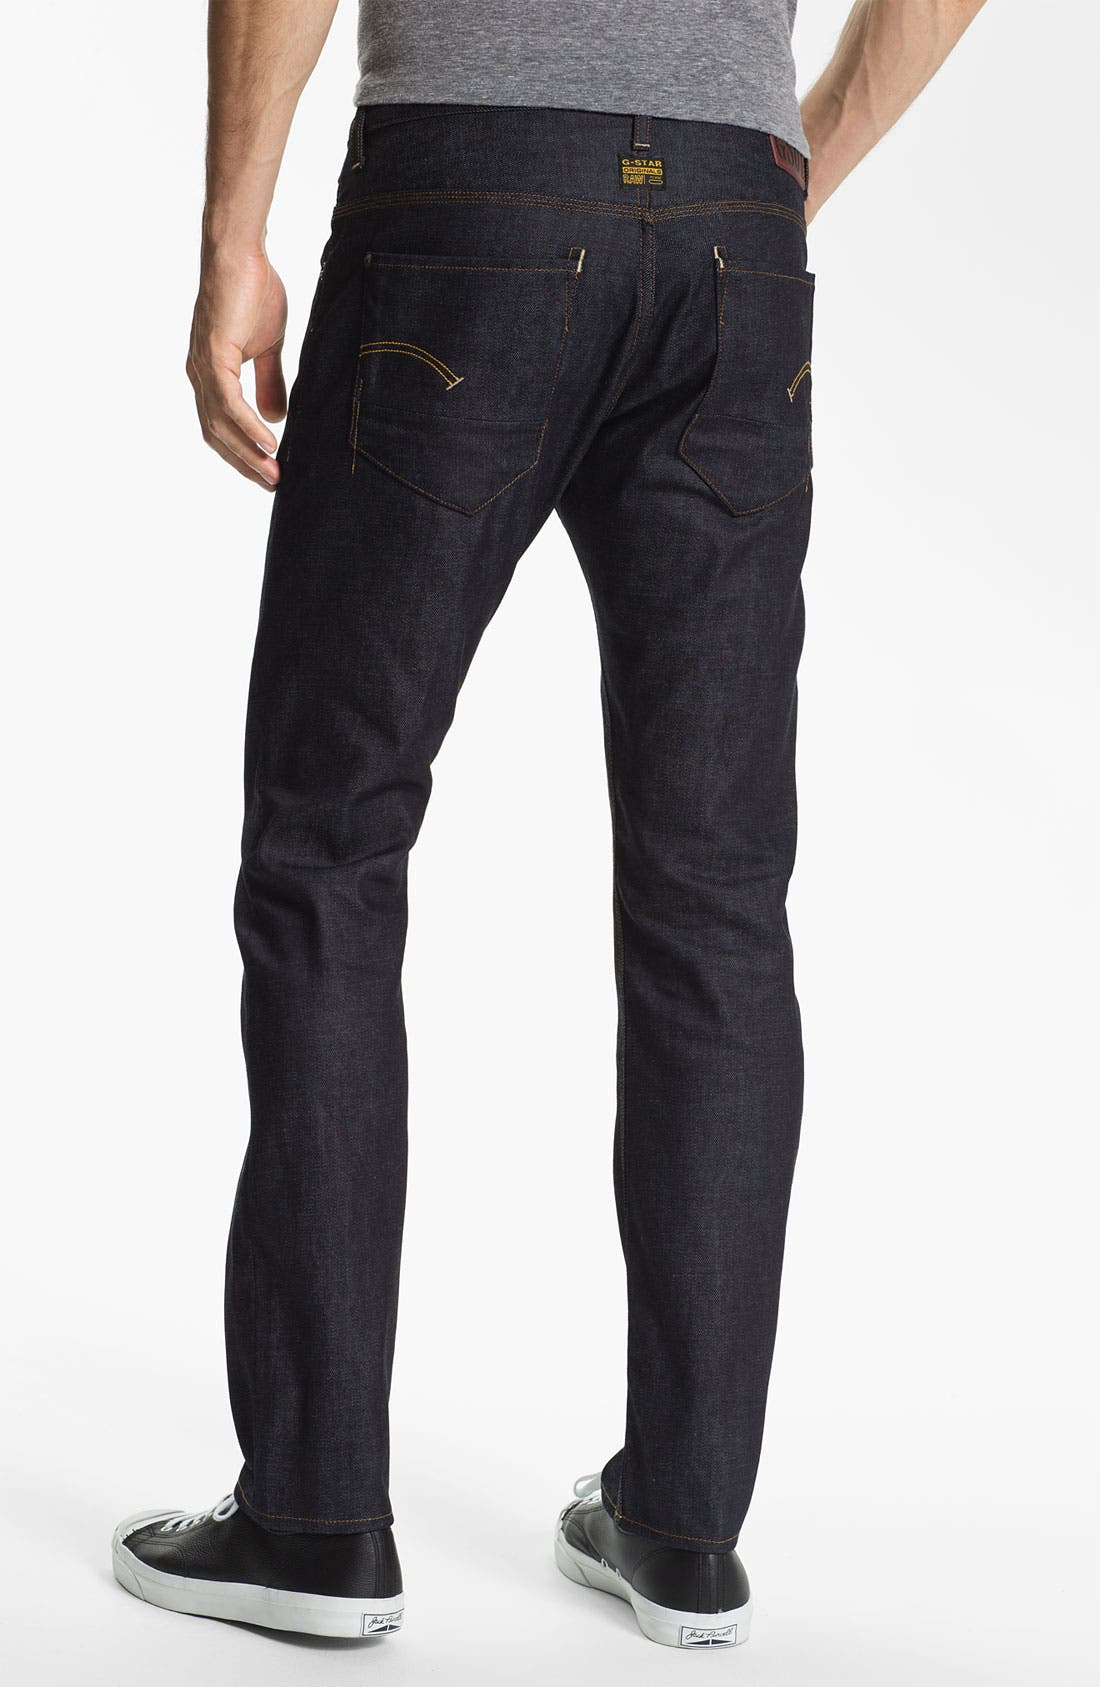 Alternate Image 1 Selected - G-Star Raw 'New Radar' Slim Straight Leg Jeans (Rigid Raw)